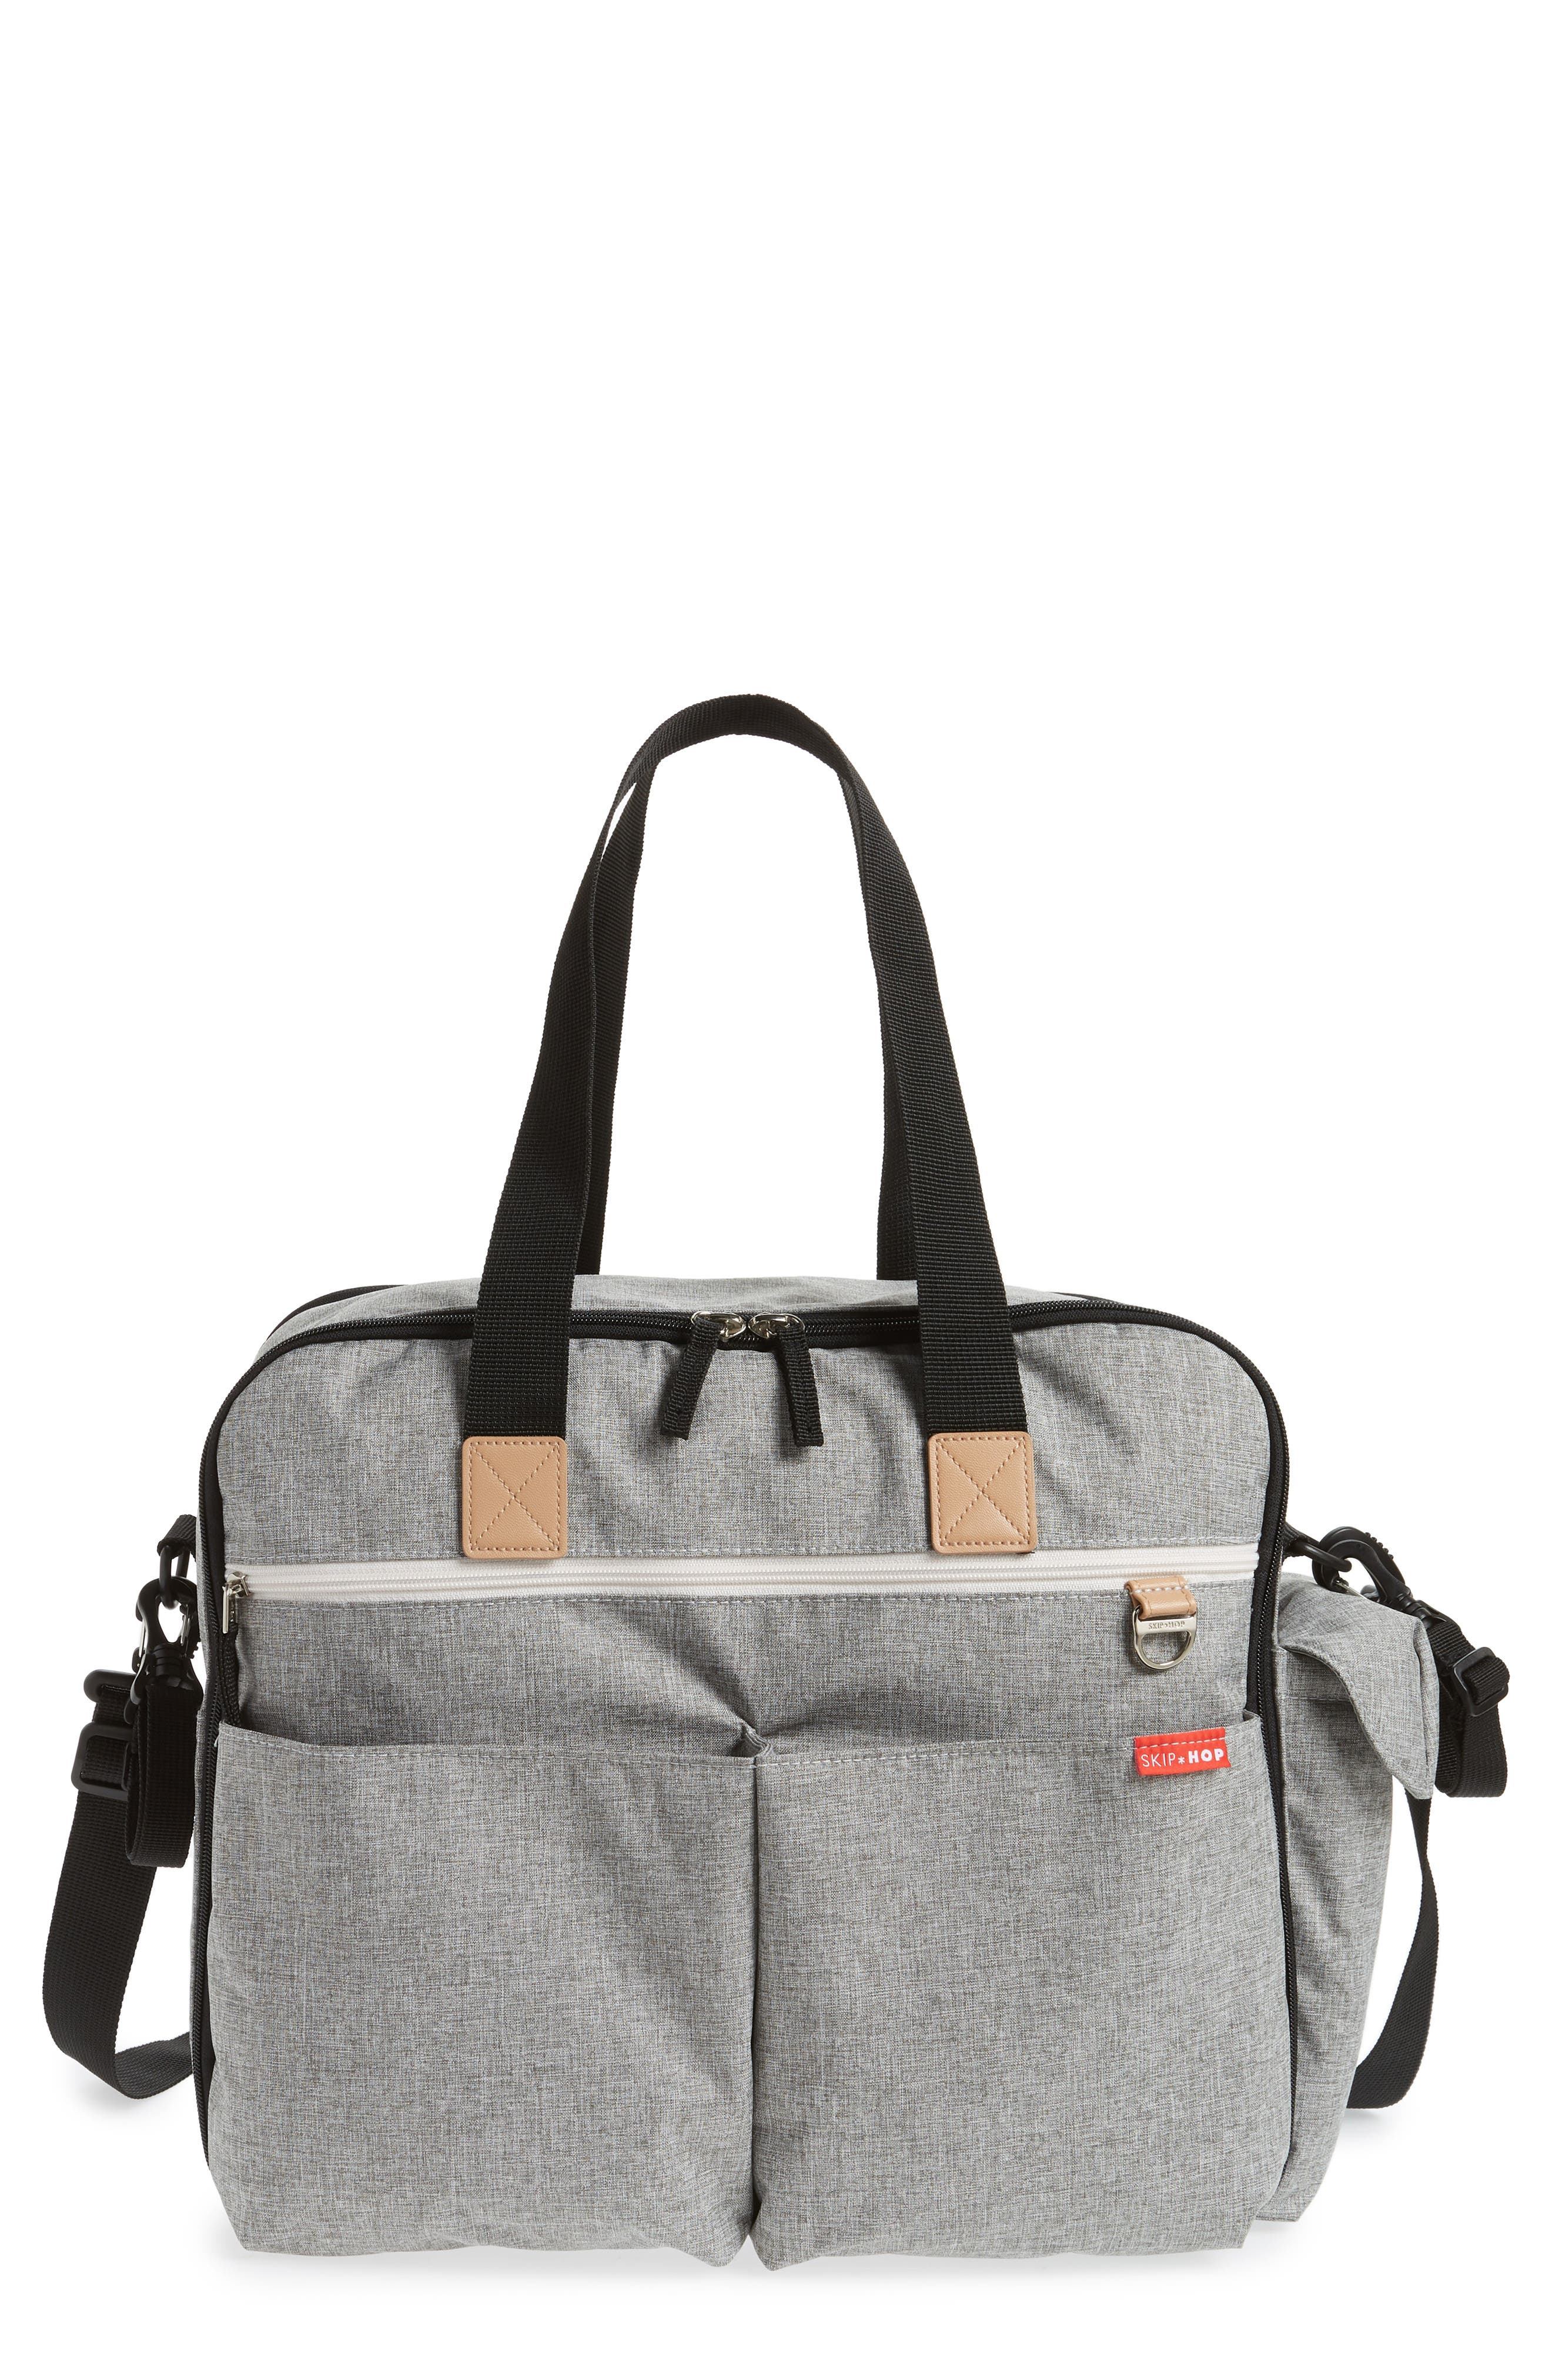 Duo Weekend Diaper Bag,                             Main thumbnail 1, color,                             GREY